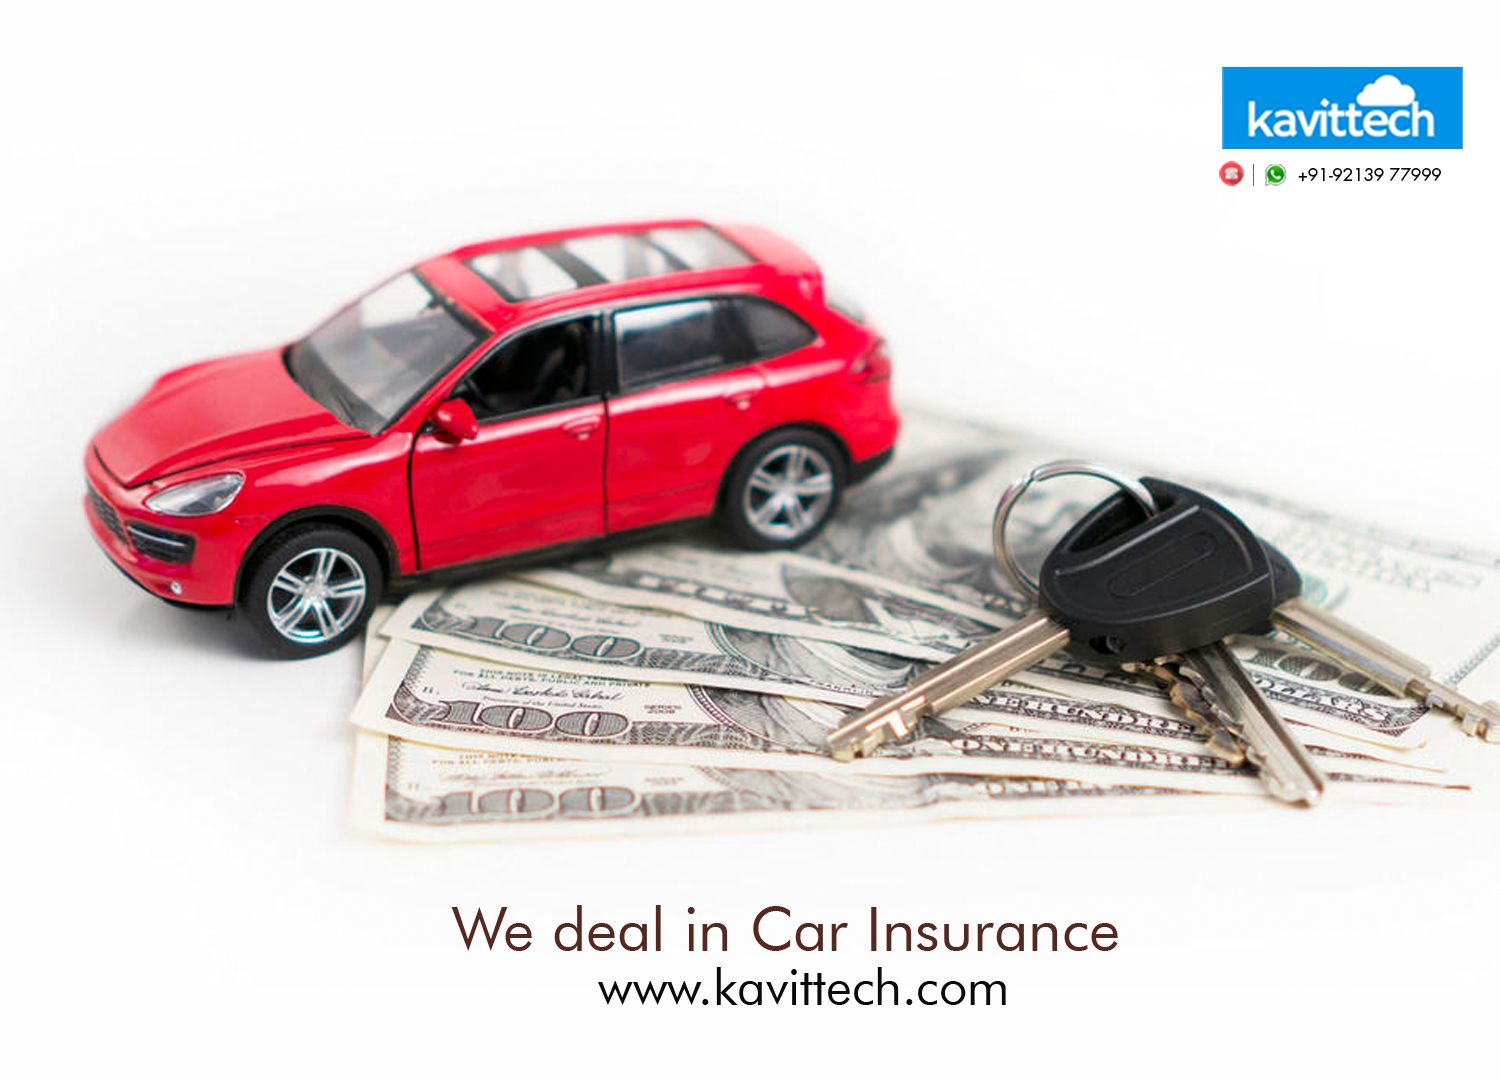 Car Insurance Feel Free To Contact Us Any Time 91 92139 77999 Visit Us Www Kavittech Com Stock Car Insurance Best Cheap Car Insurance Best Car Insurance